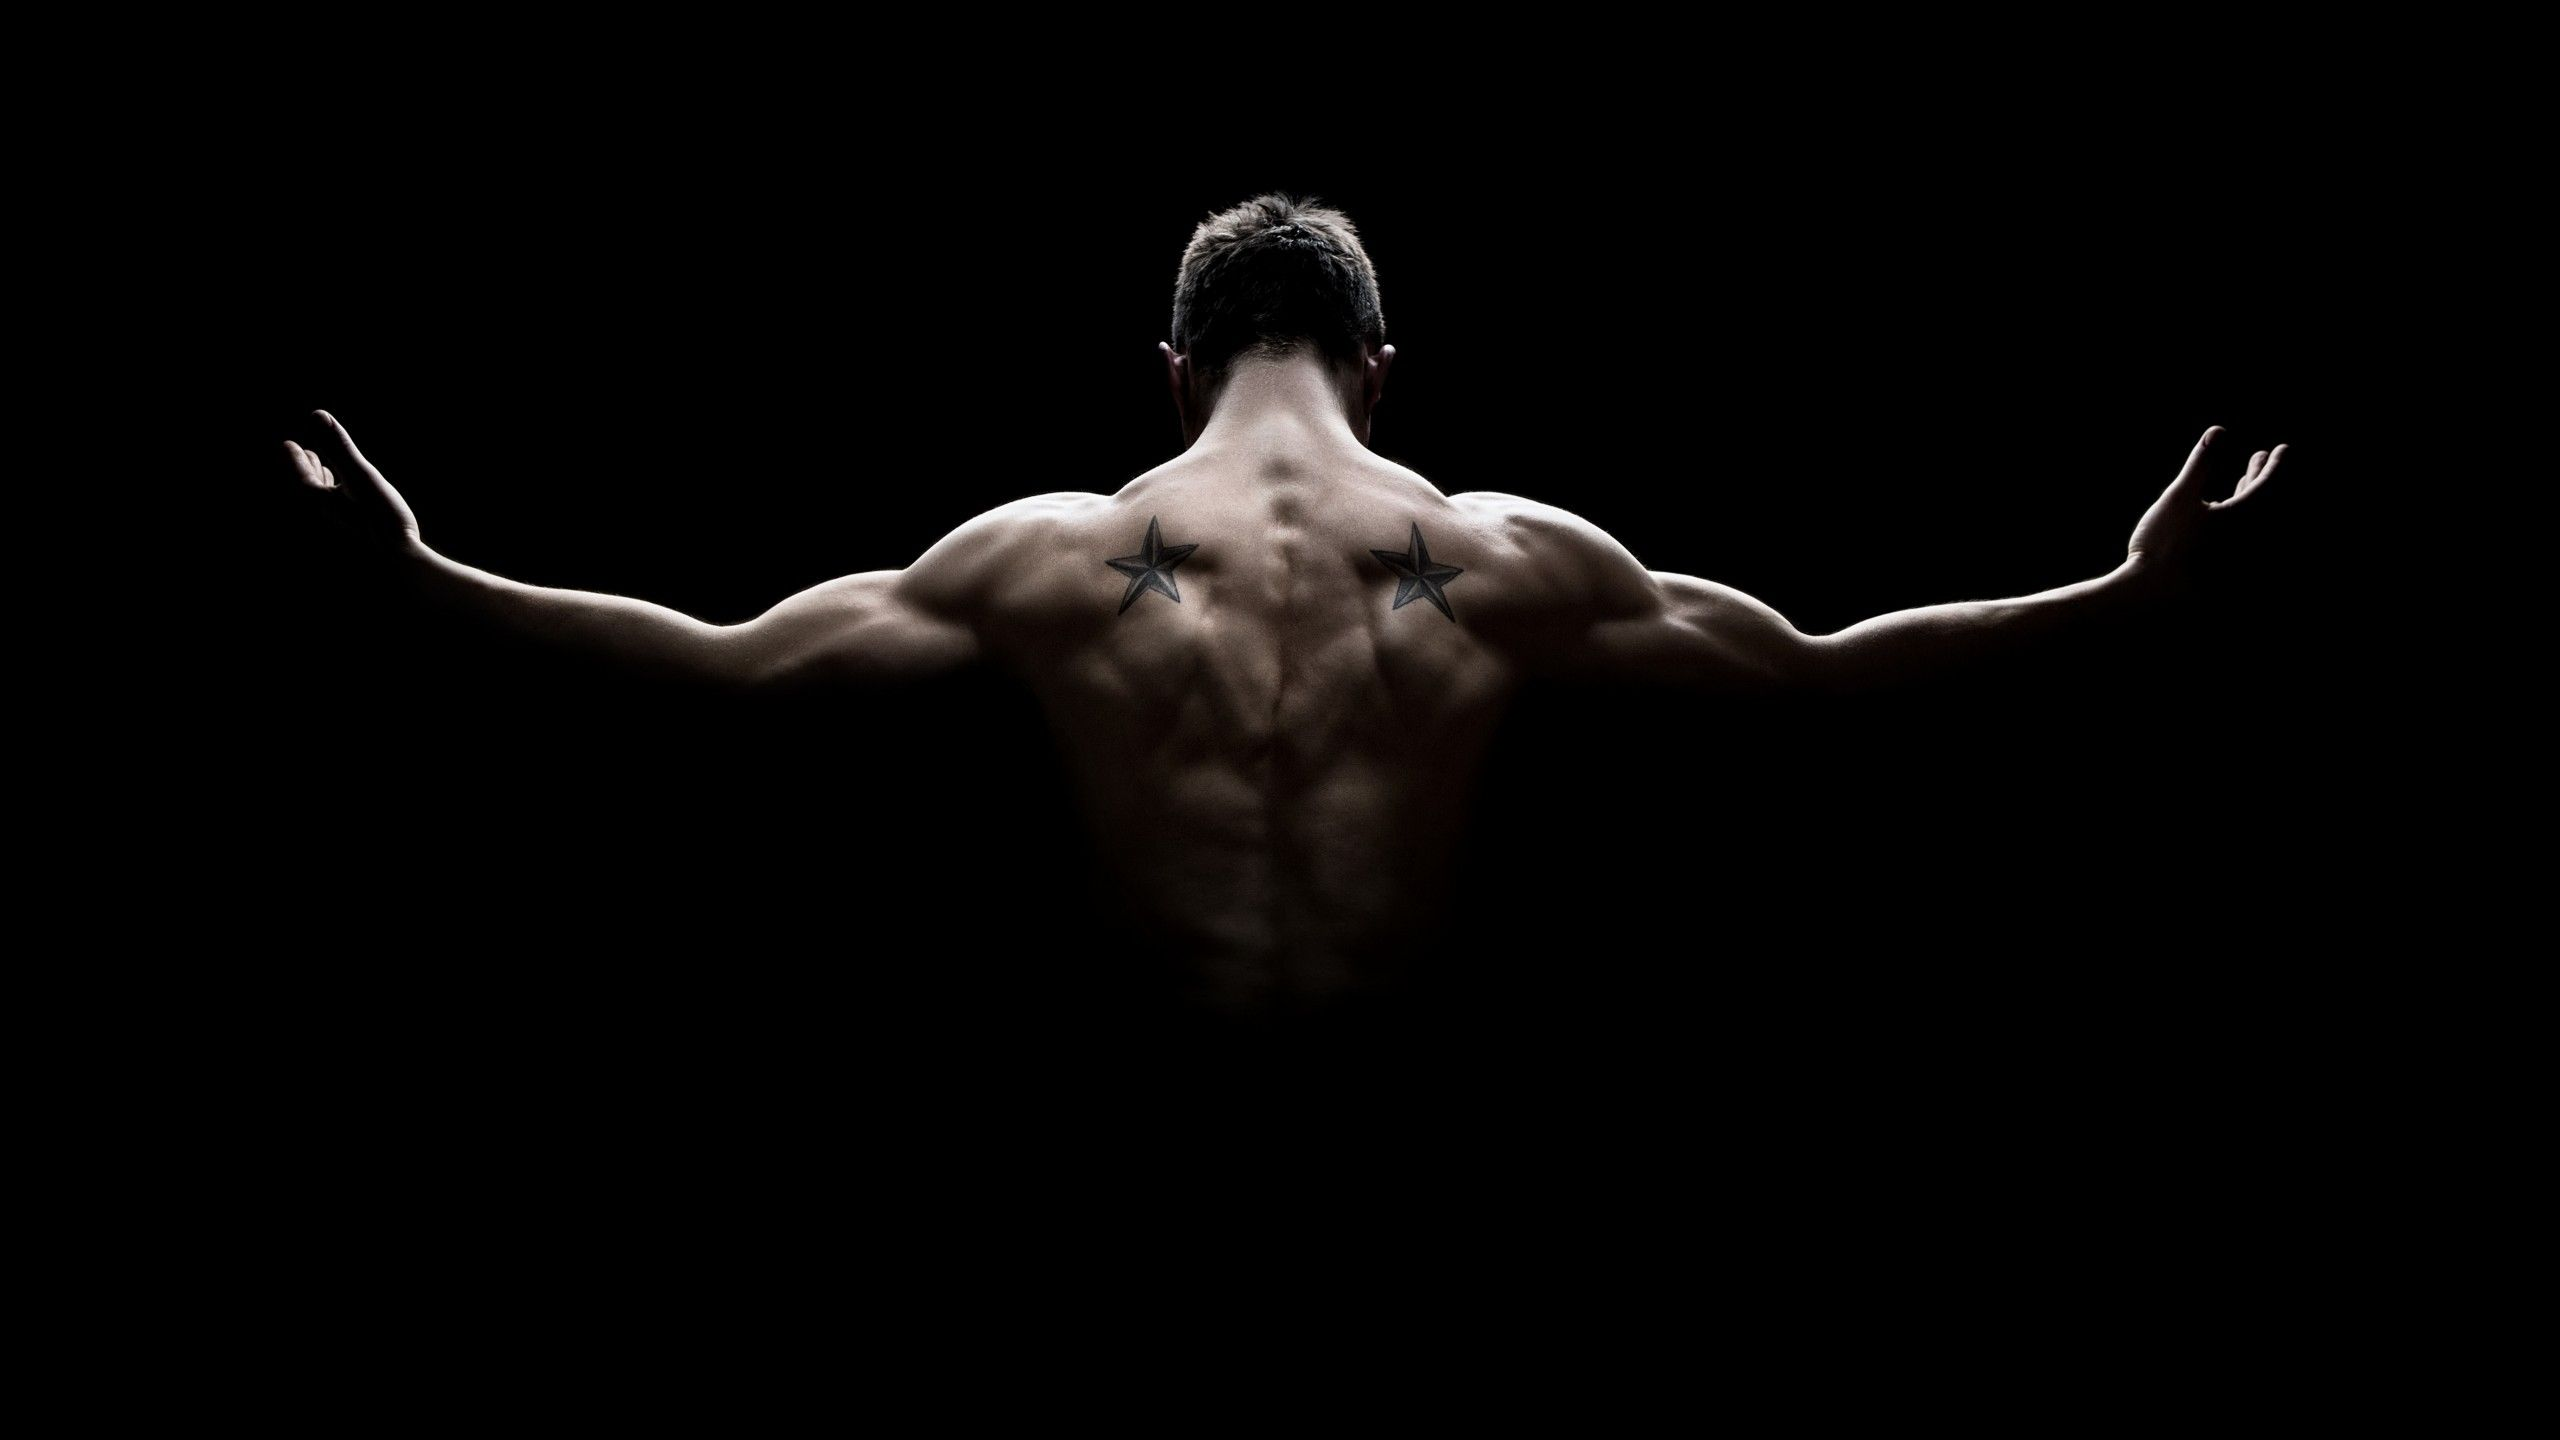 2560x1440 Wallpaper Bodybuilder, Muscles, 5K, Lifestyle, #6352